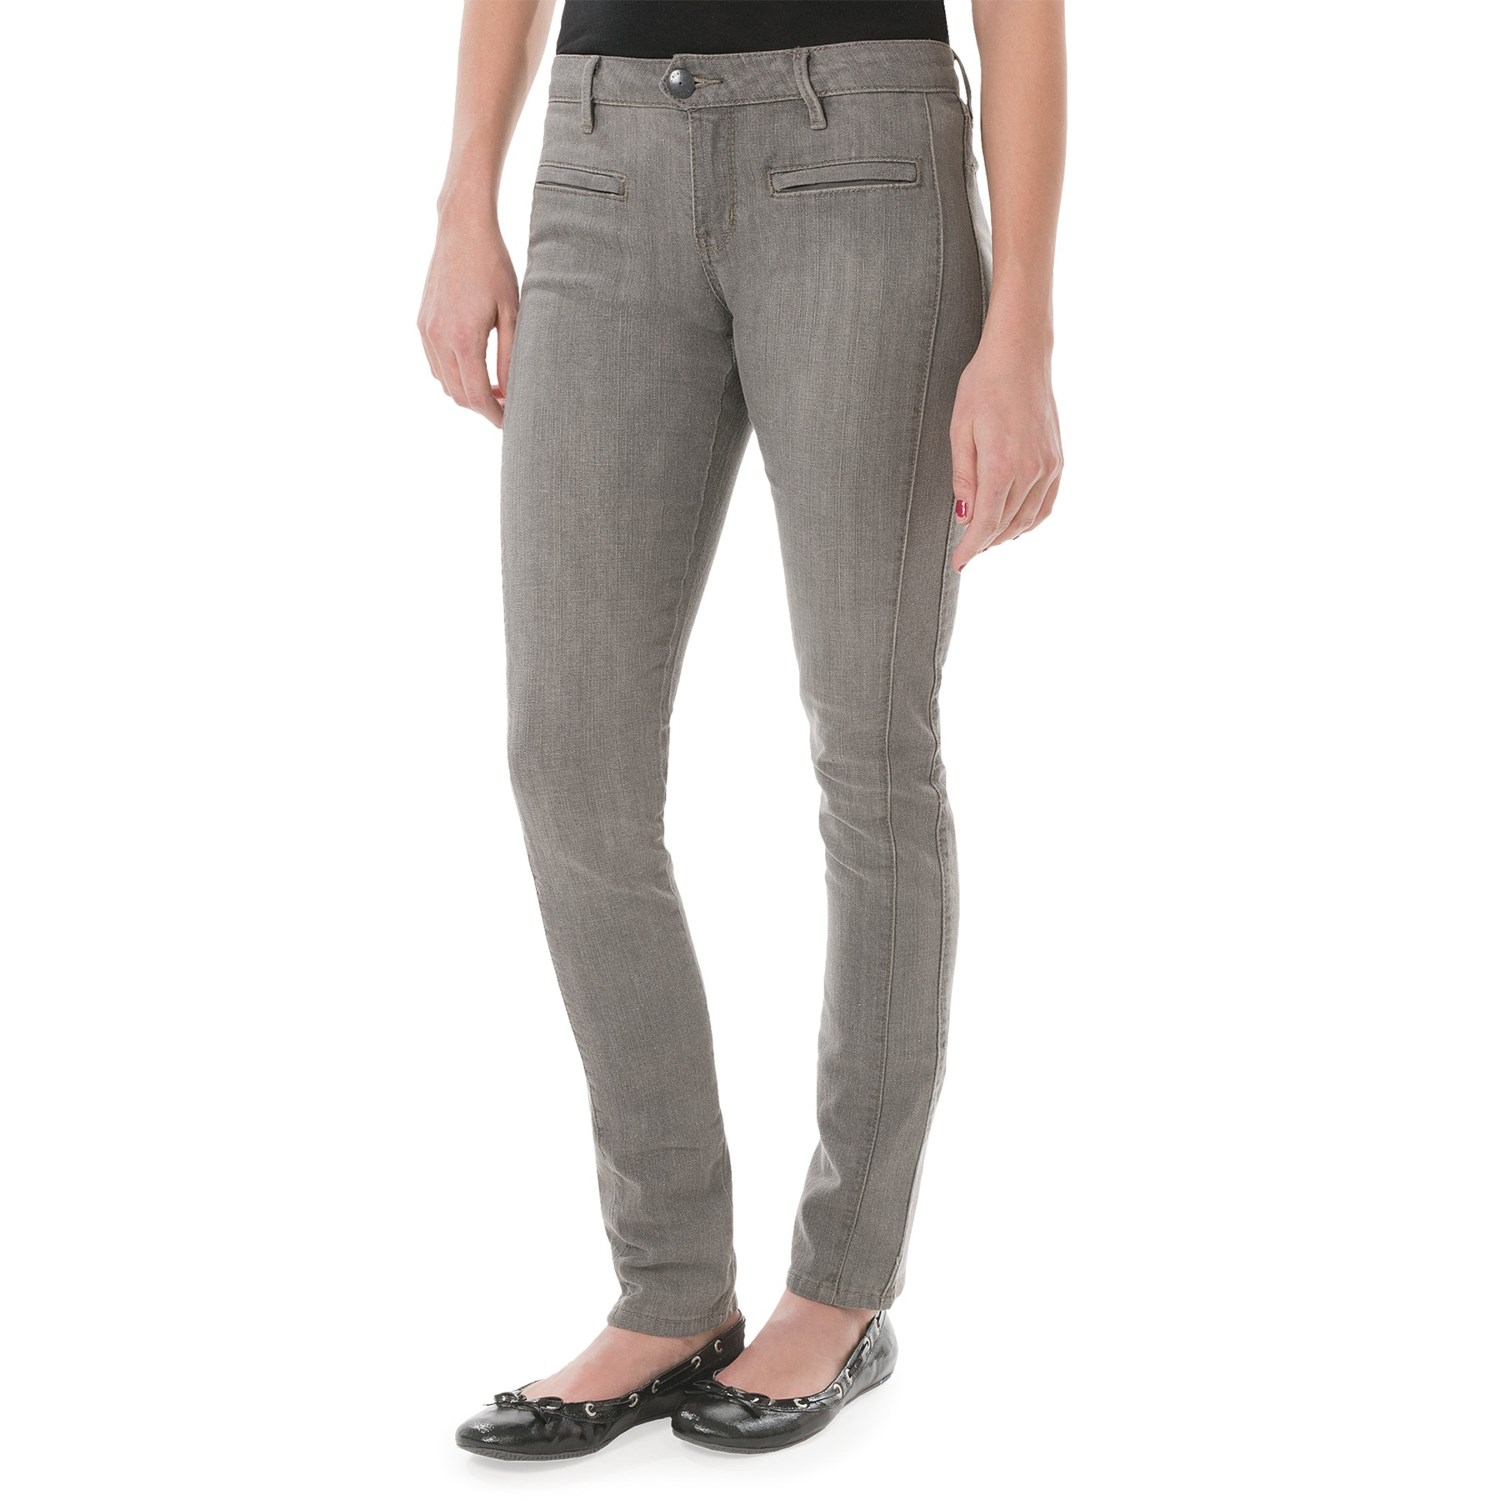 Colored Skinny Jeans For Women - Jeans Am